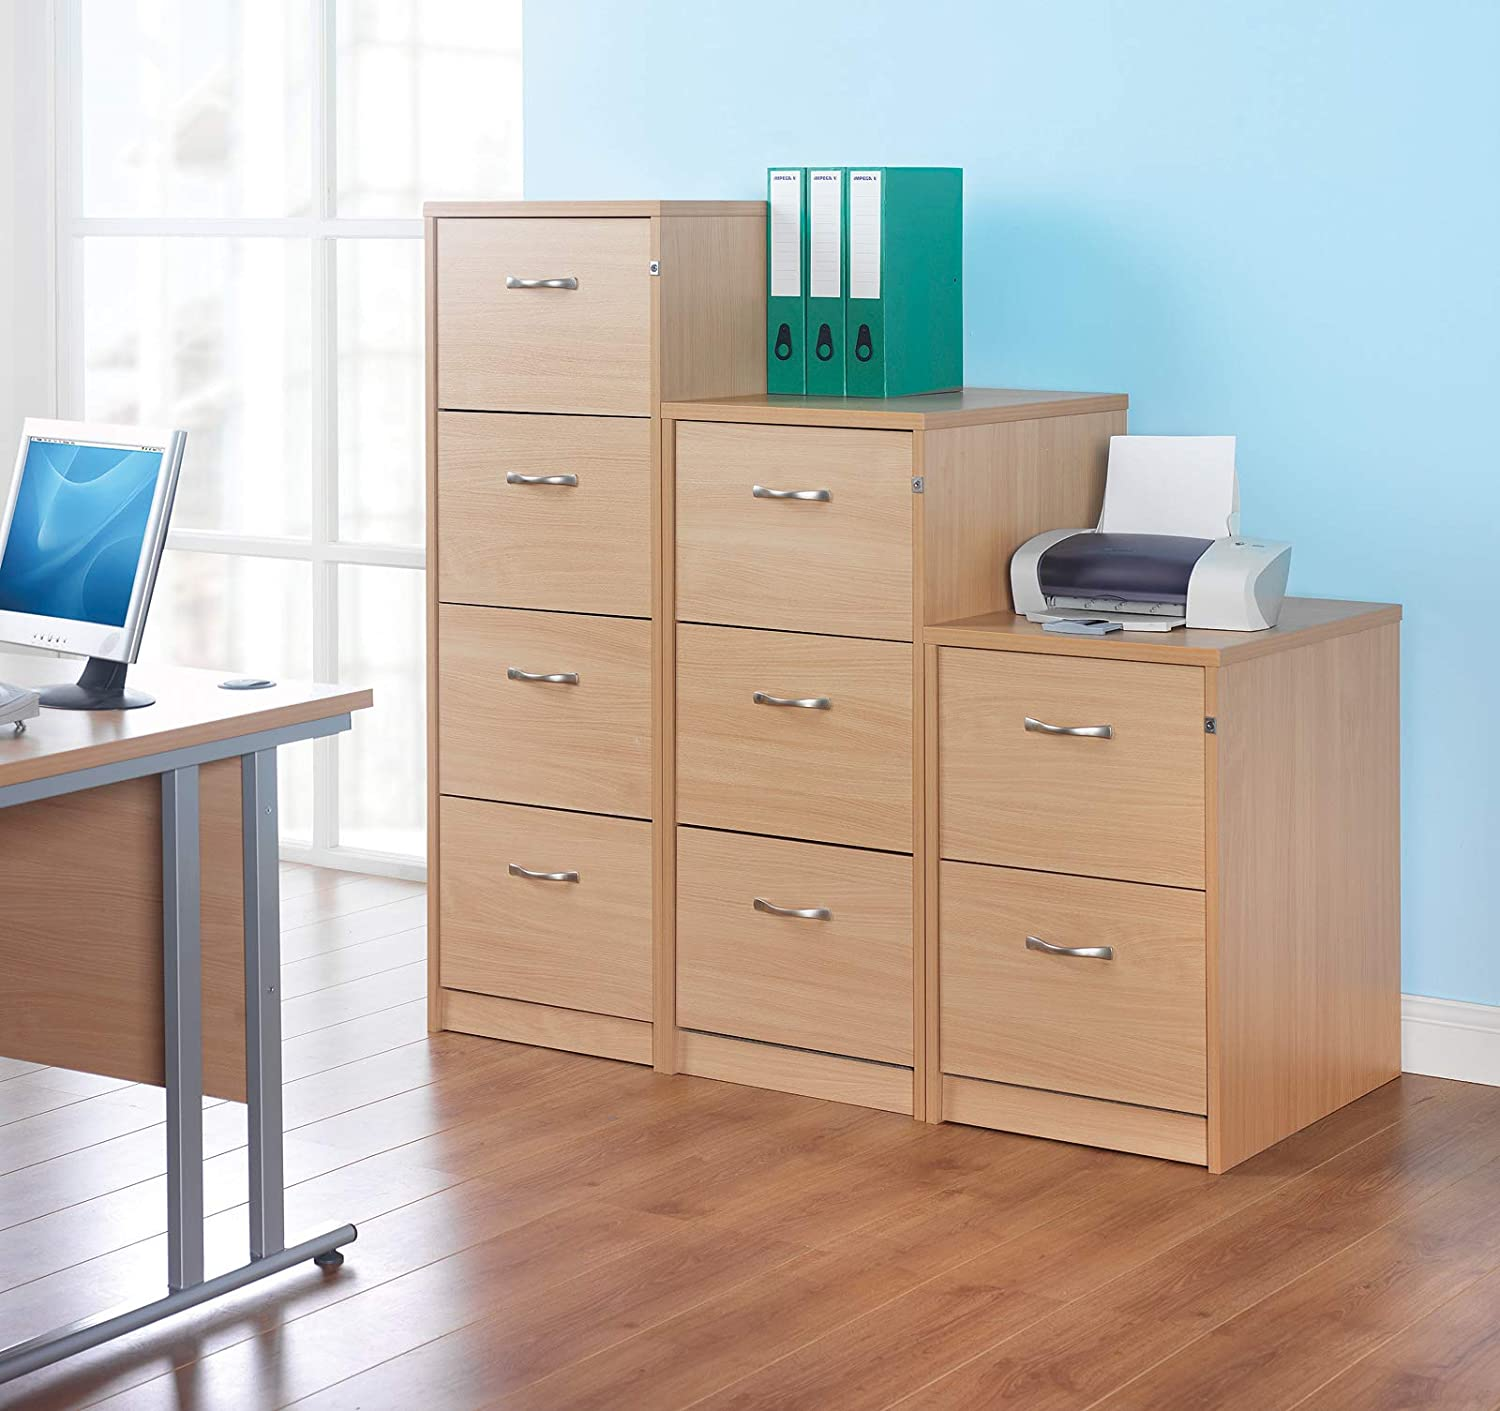 Deluxe executive 2 drawer filing cabinet with silver handles 730mm high Beech